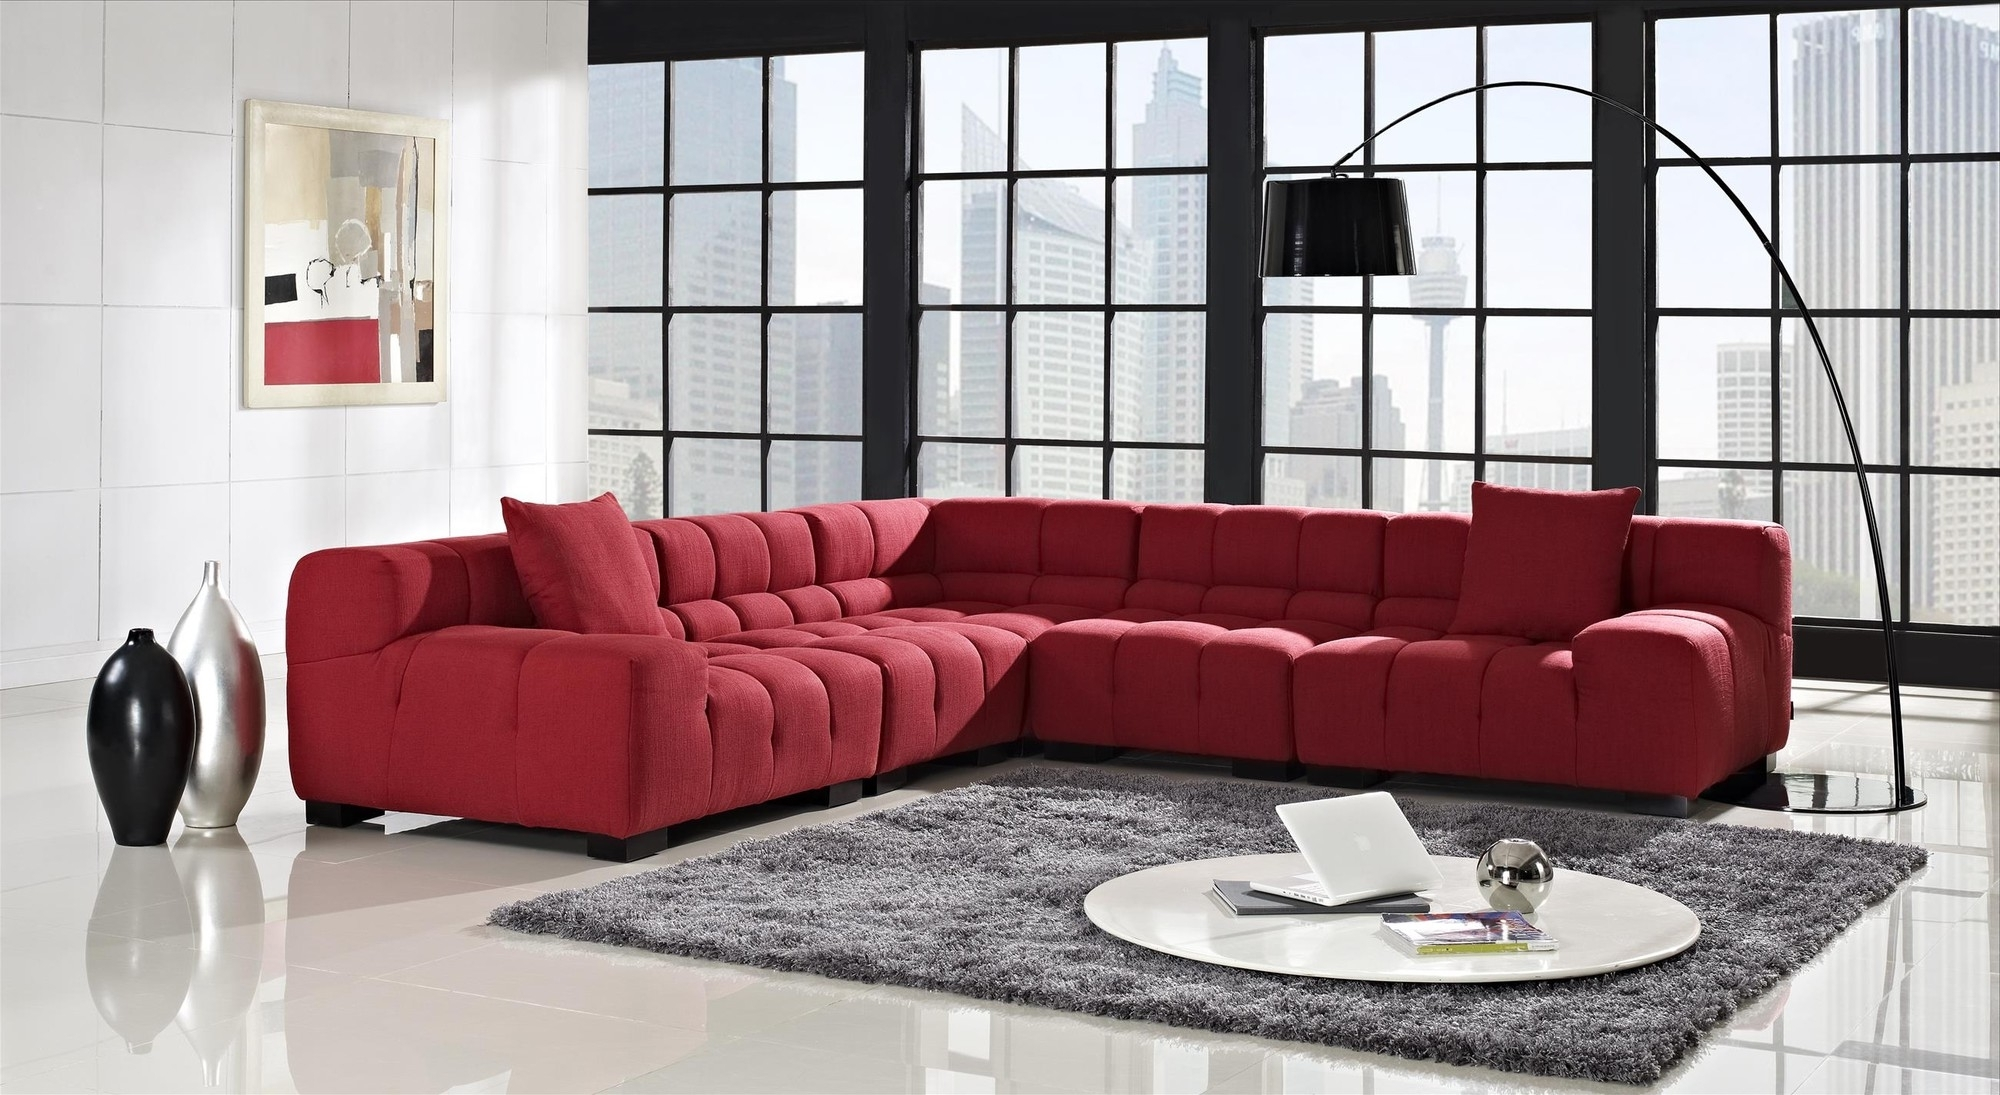 Fashionable Leather Modular Sectional Sofas With Regard To Furniture Awesome Modular Sectionals Sofas Hi Res Wallpaper Photos (View 5 of 15)